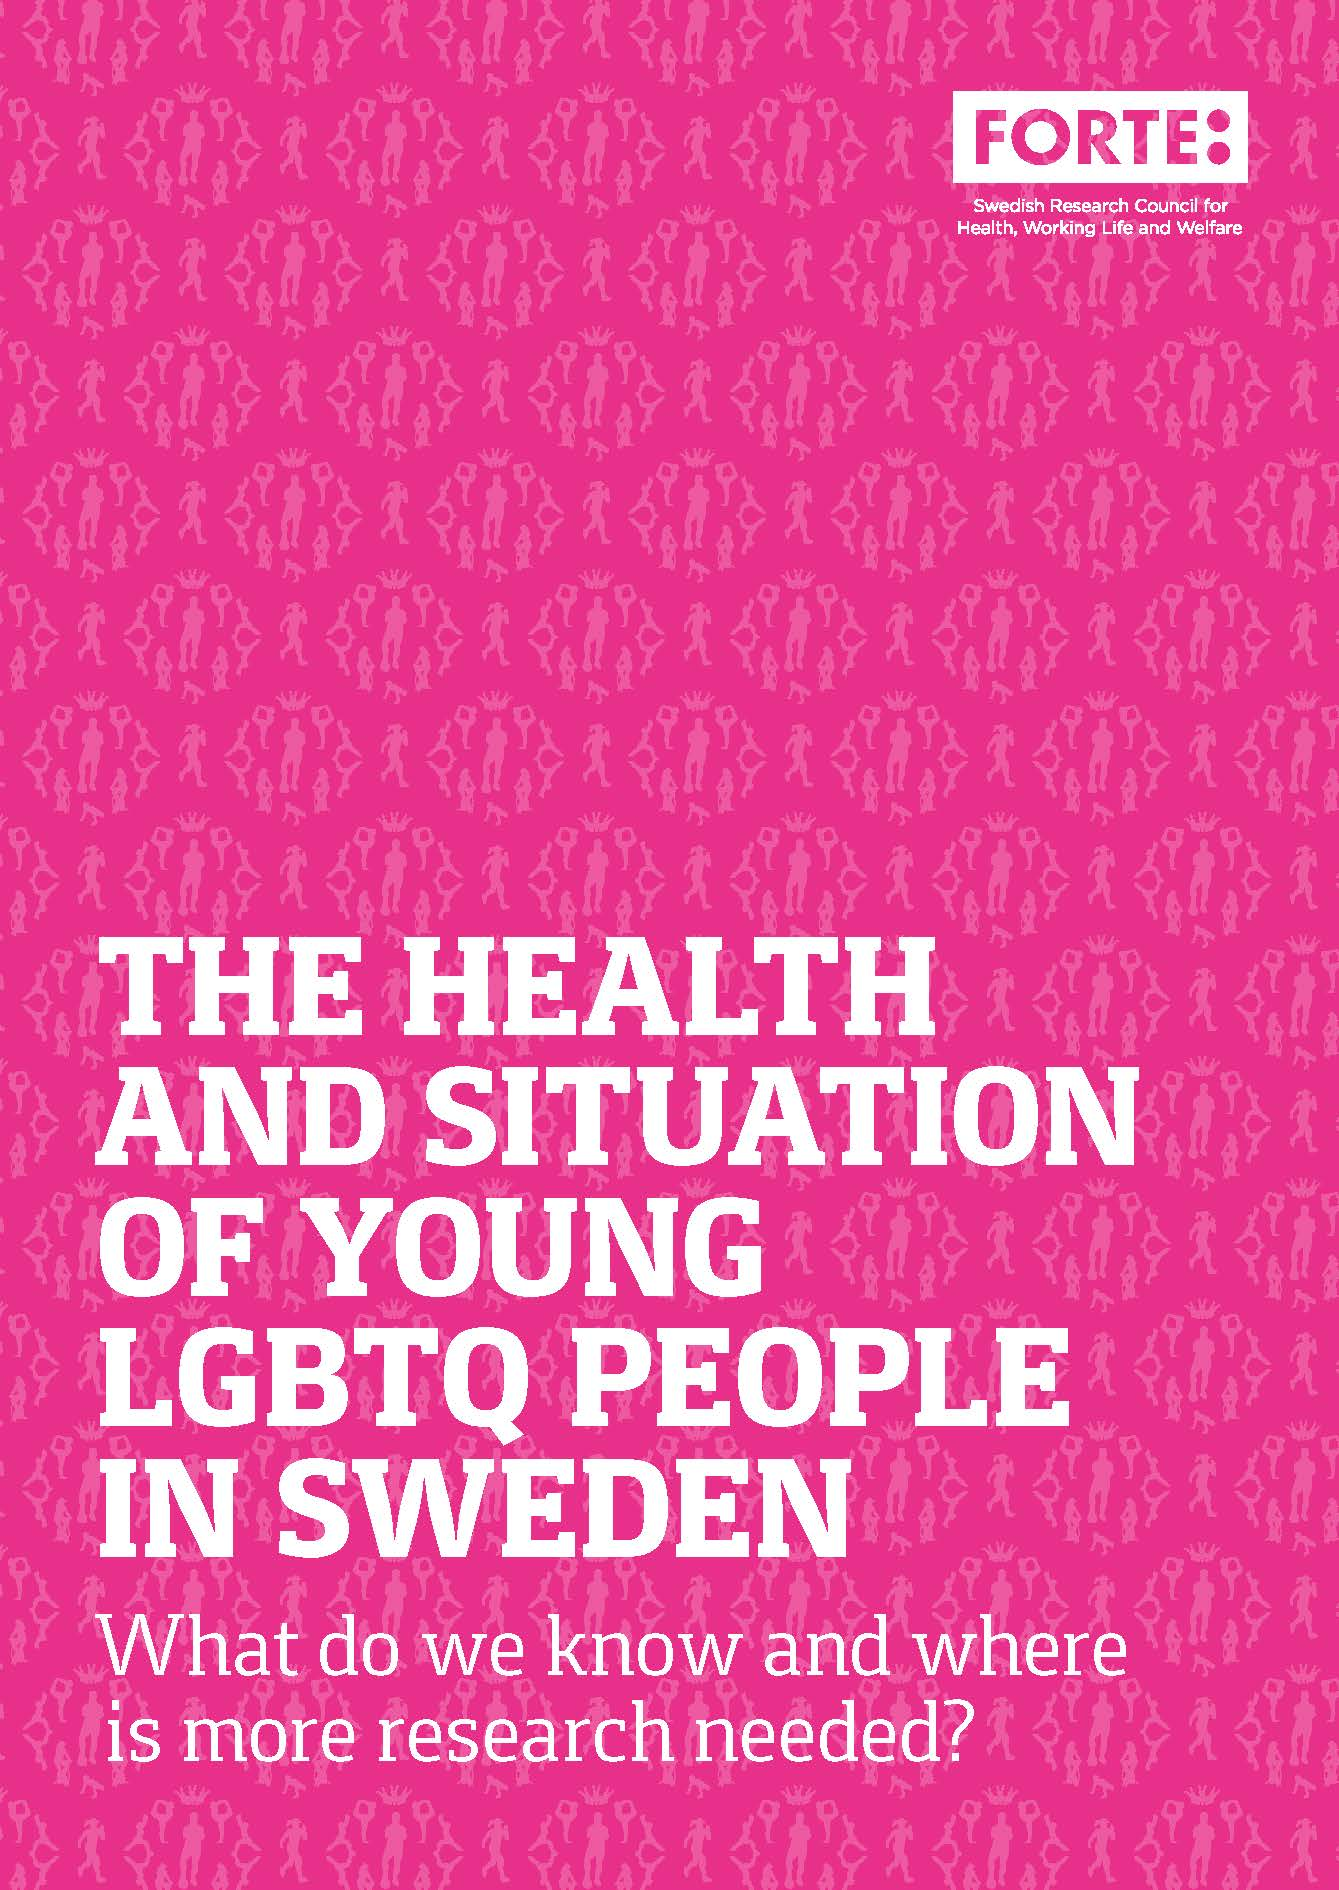 The health and situation of young LGBTQ people in Sweden – What do we know and where is more research needed?